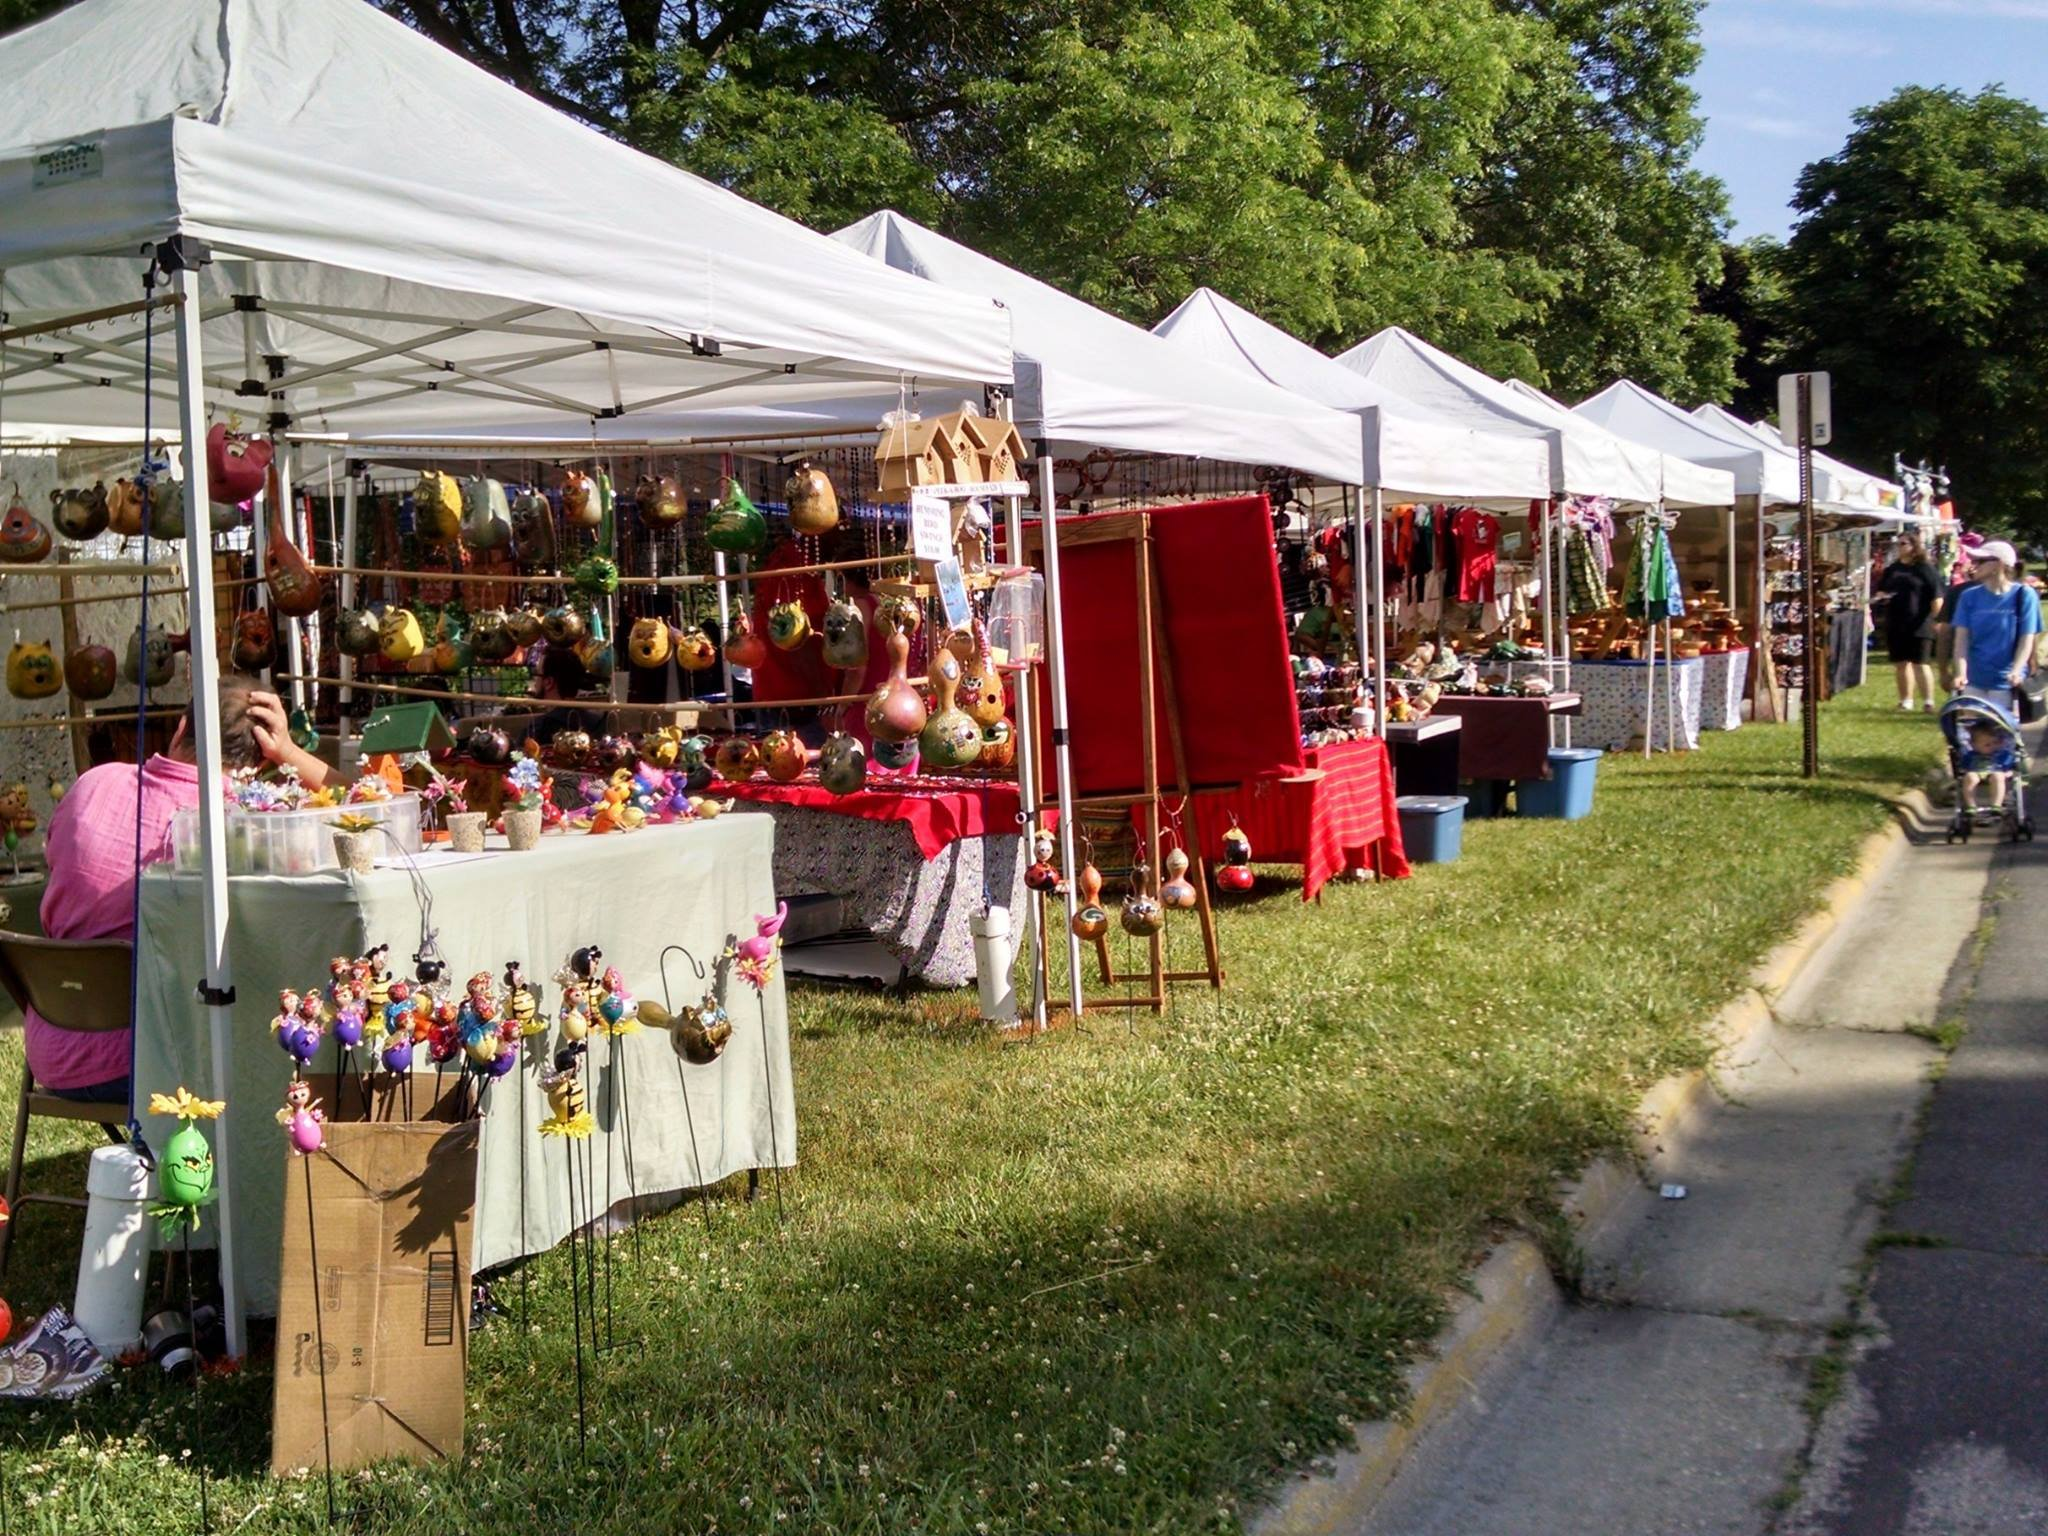 Scenes from Strawberry fest 2016